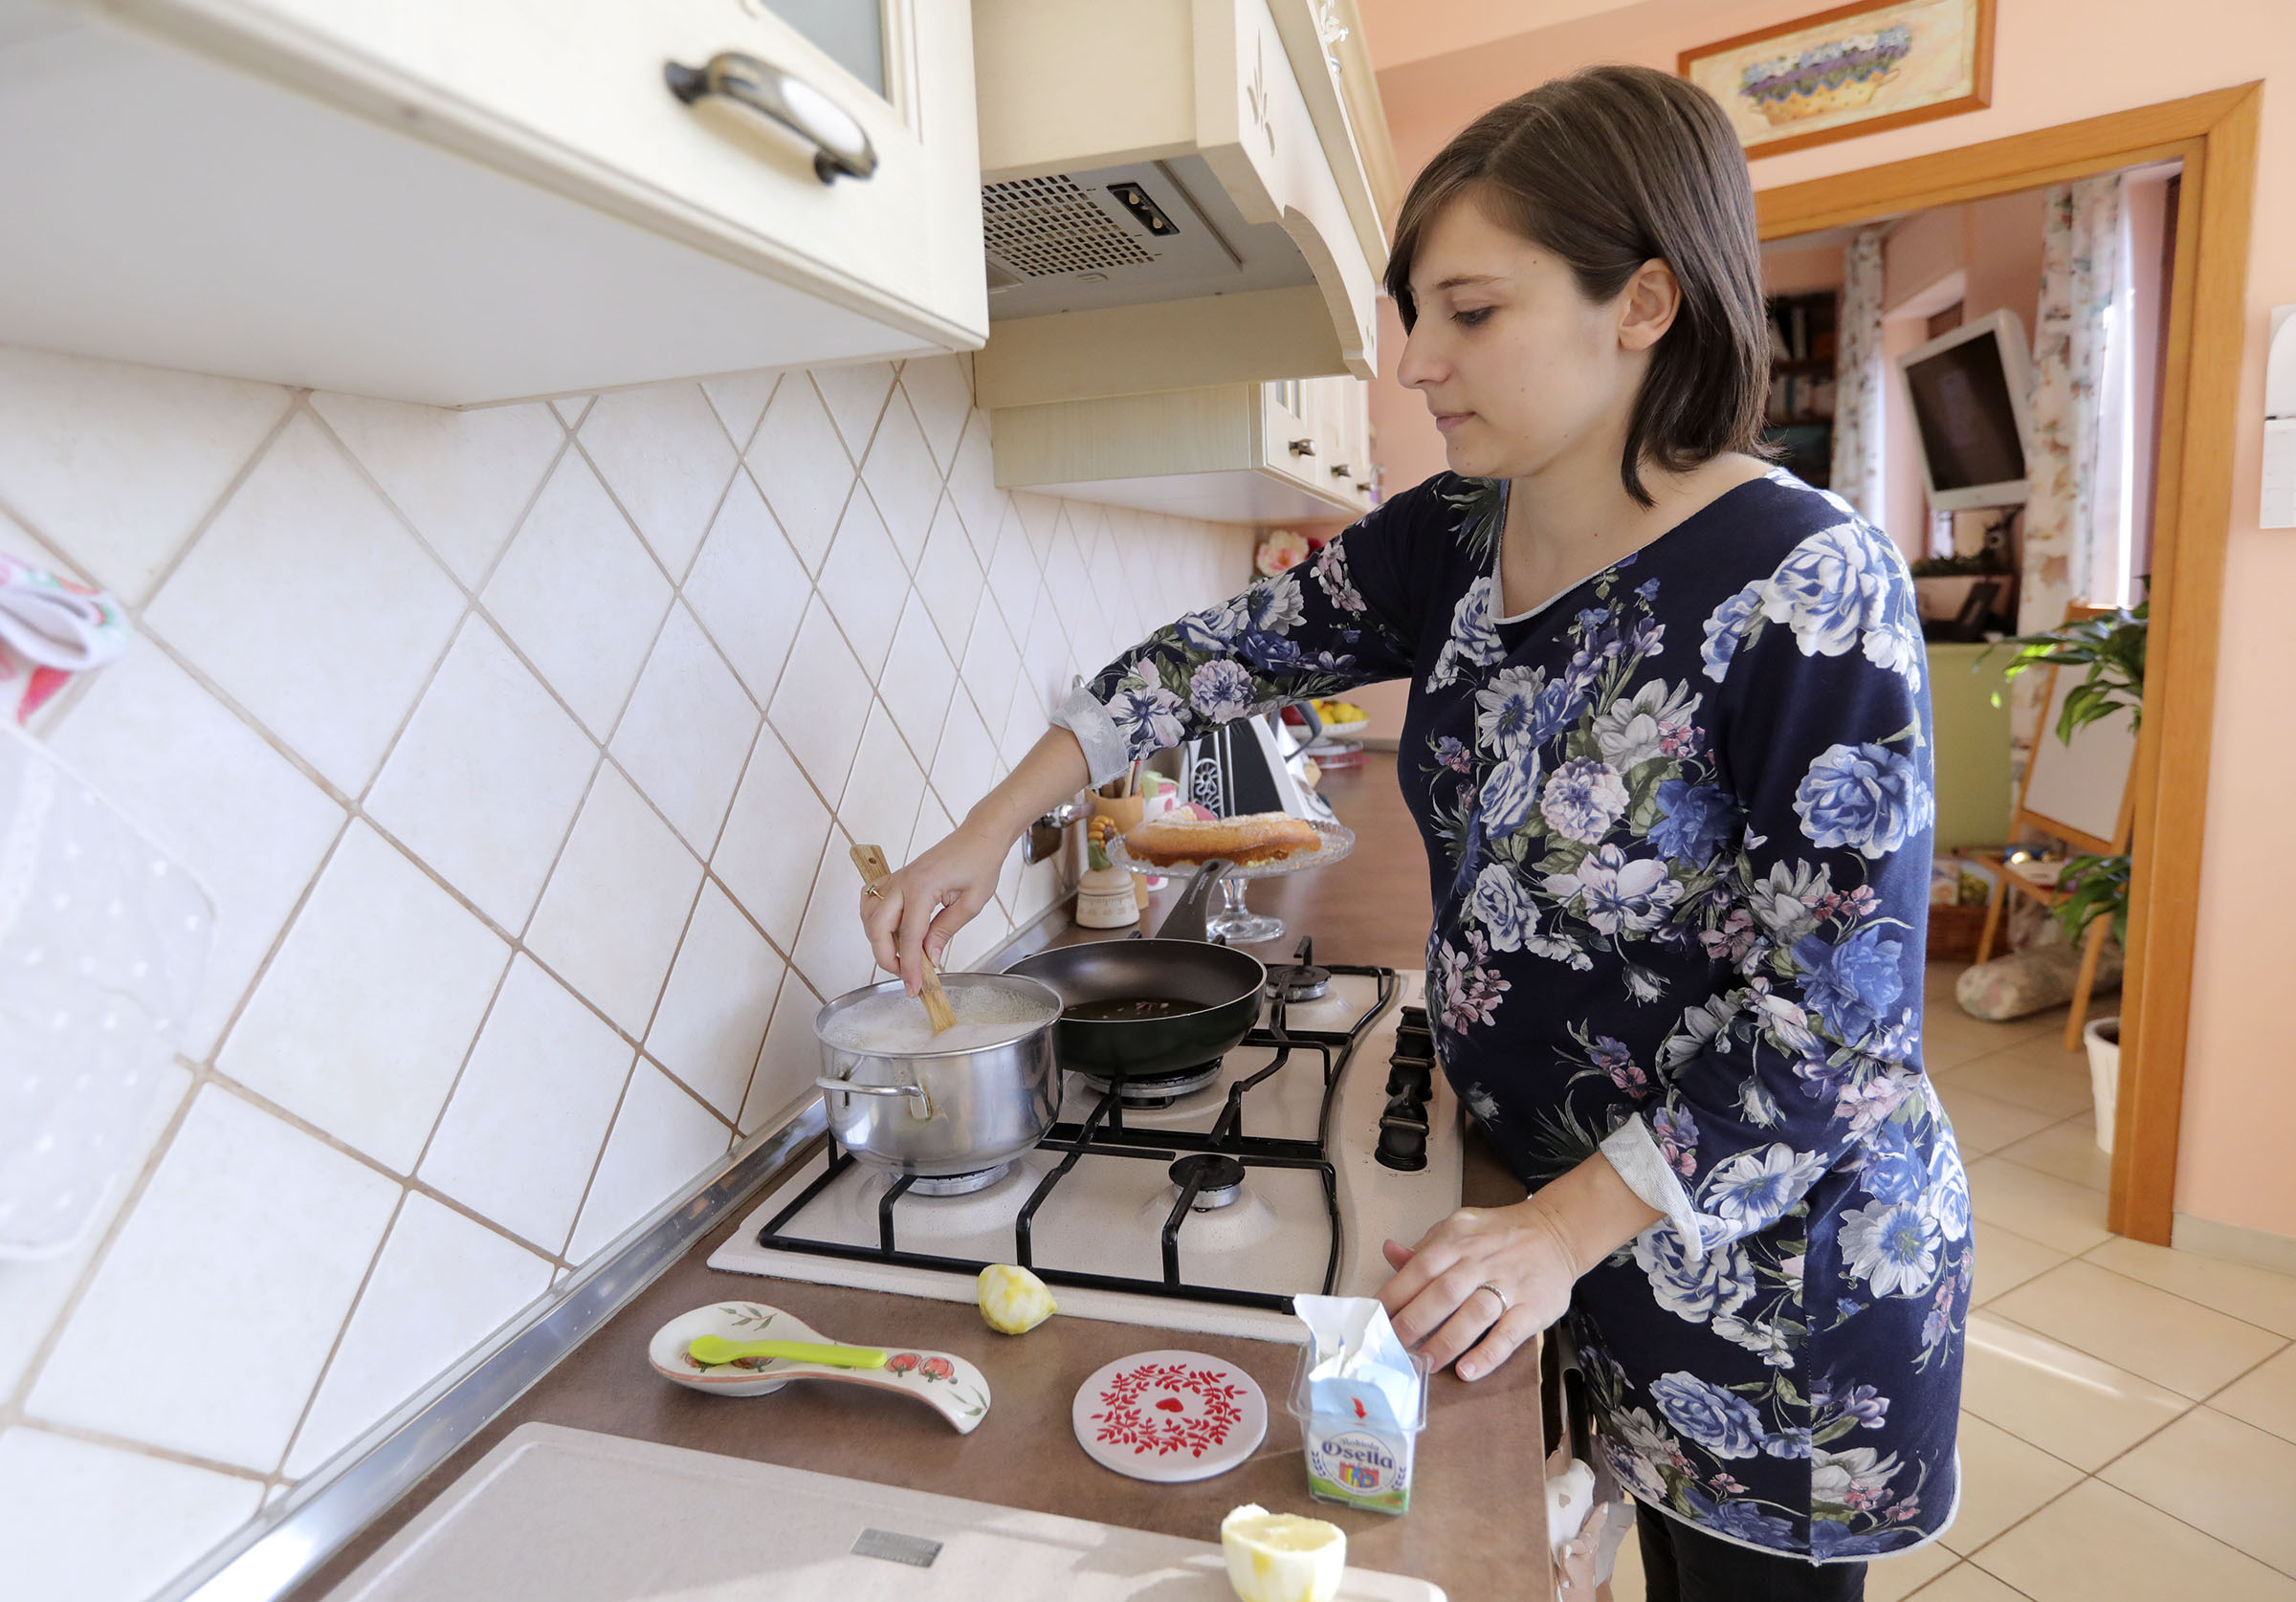 Norma Salerno cooks pasta at home in Rome, Italy, on Sunday, Nov. 18, 2018.